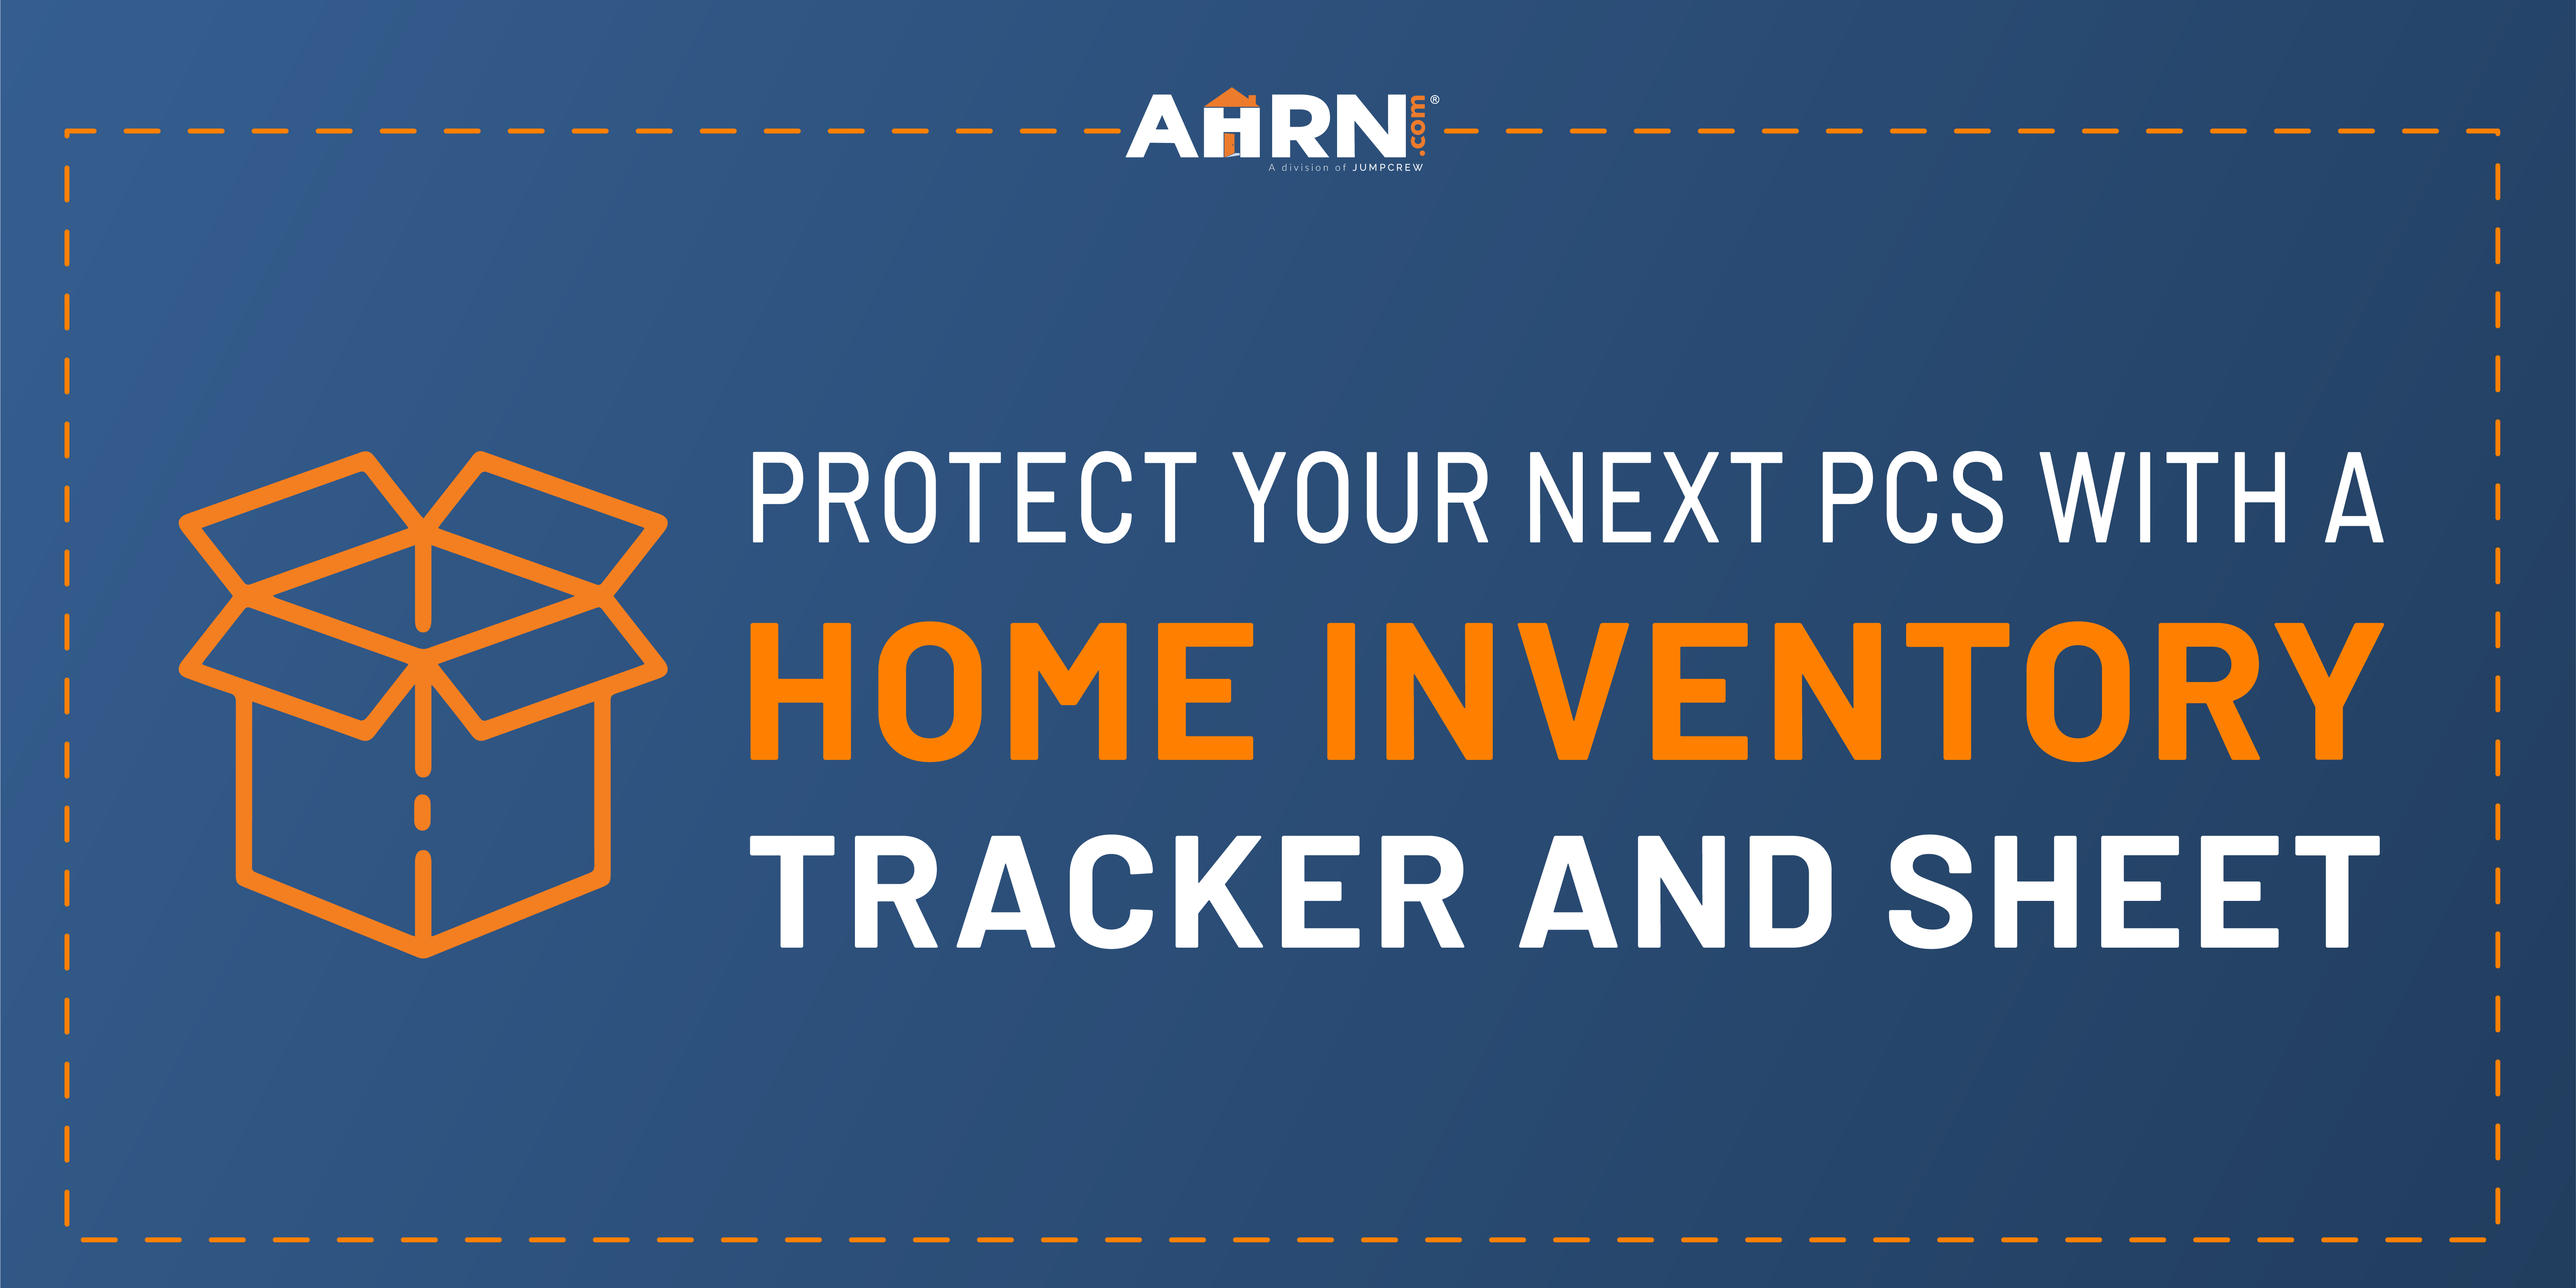 No PCS Checklist is Complete Without the Protection of a Home Inventory!